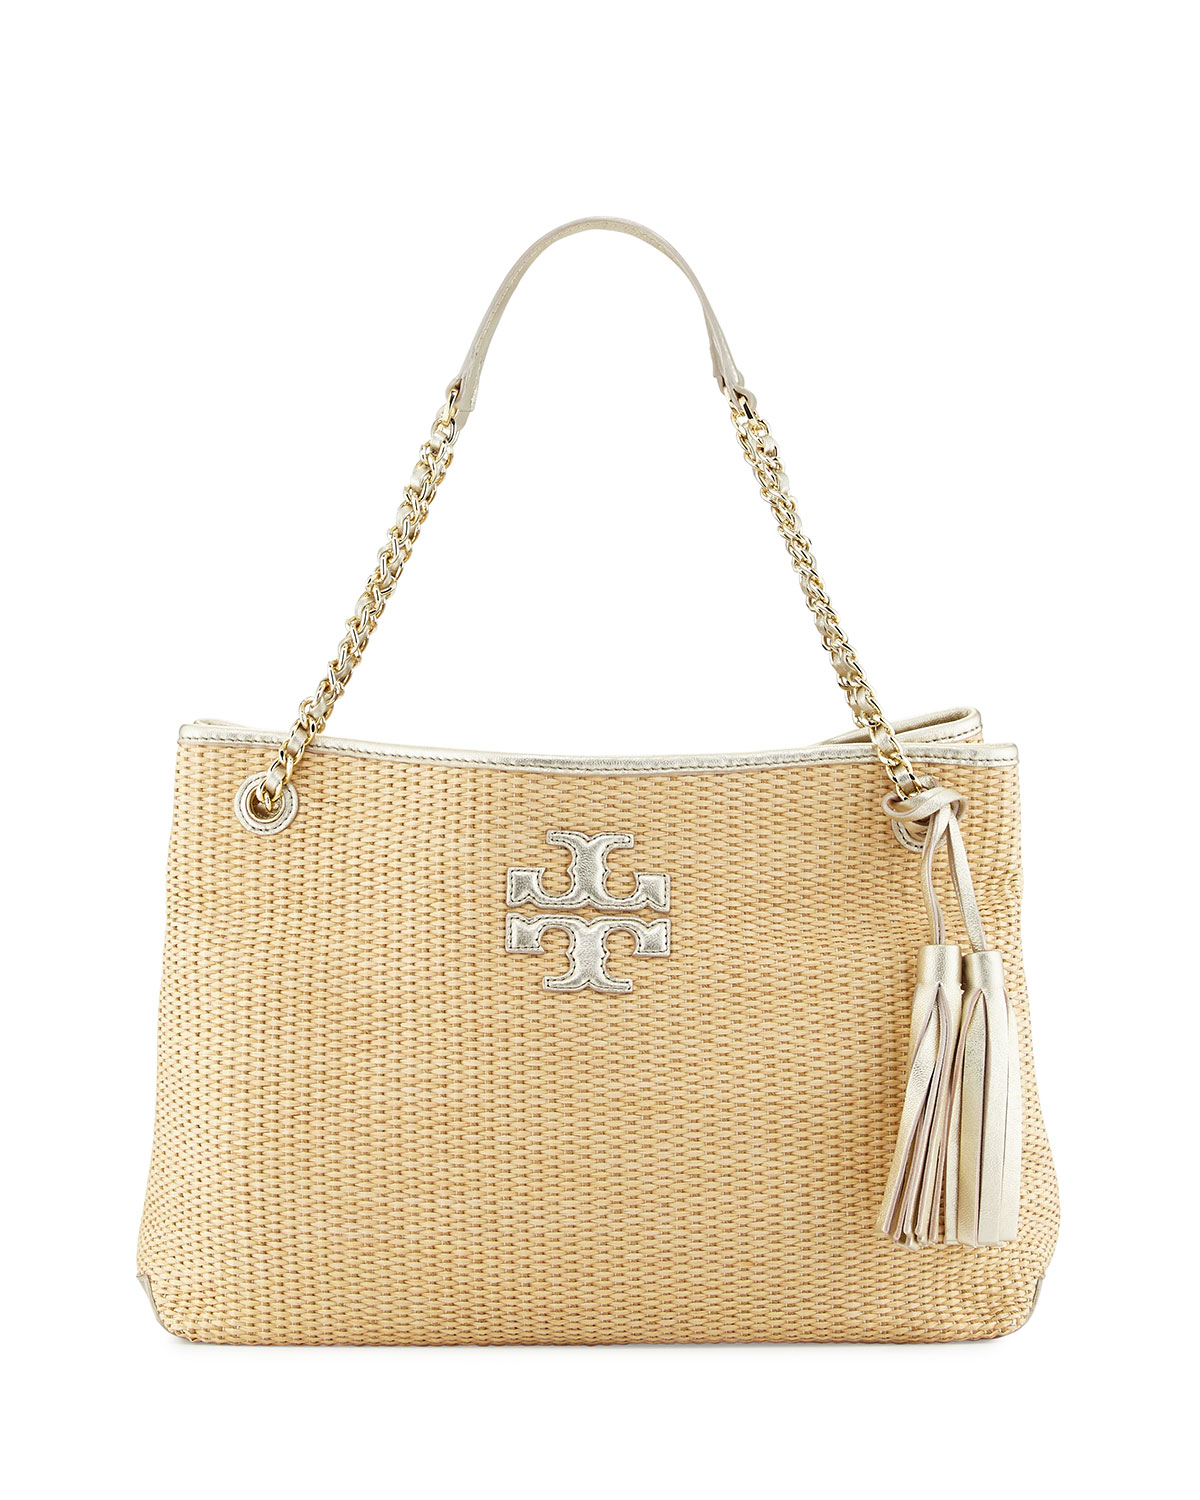 da42c3cd9be Tory Burch Thea Straw Slouchy Tote Bag, Natural | Neiman Marcus